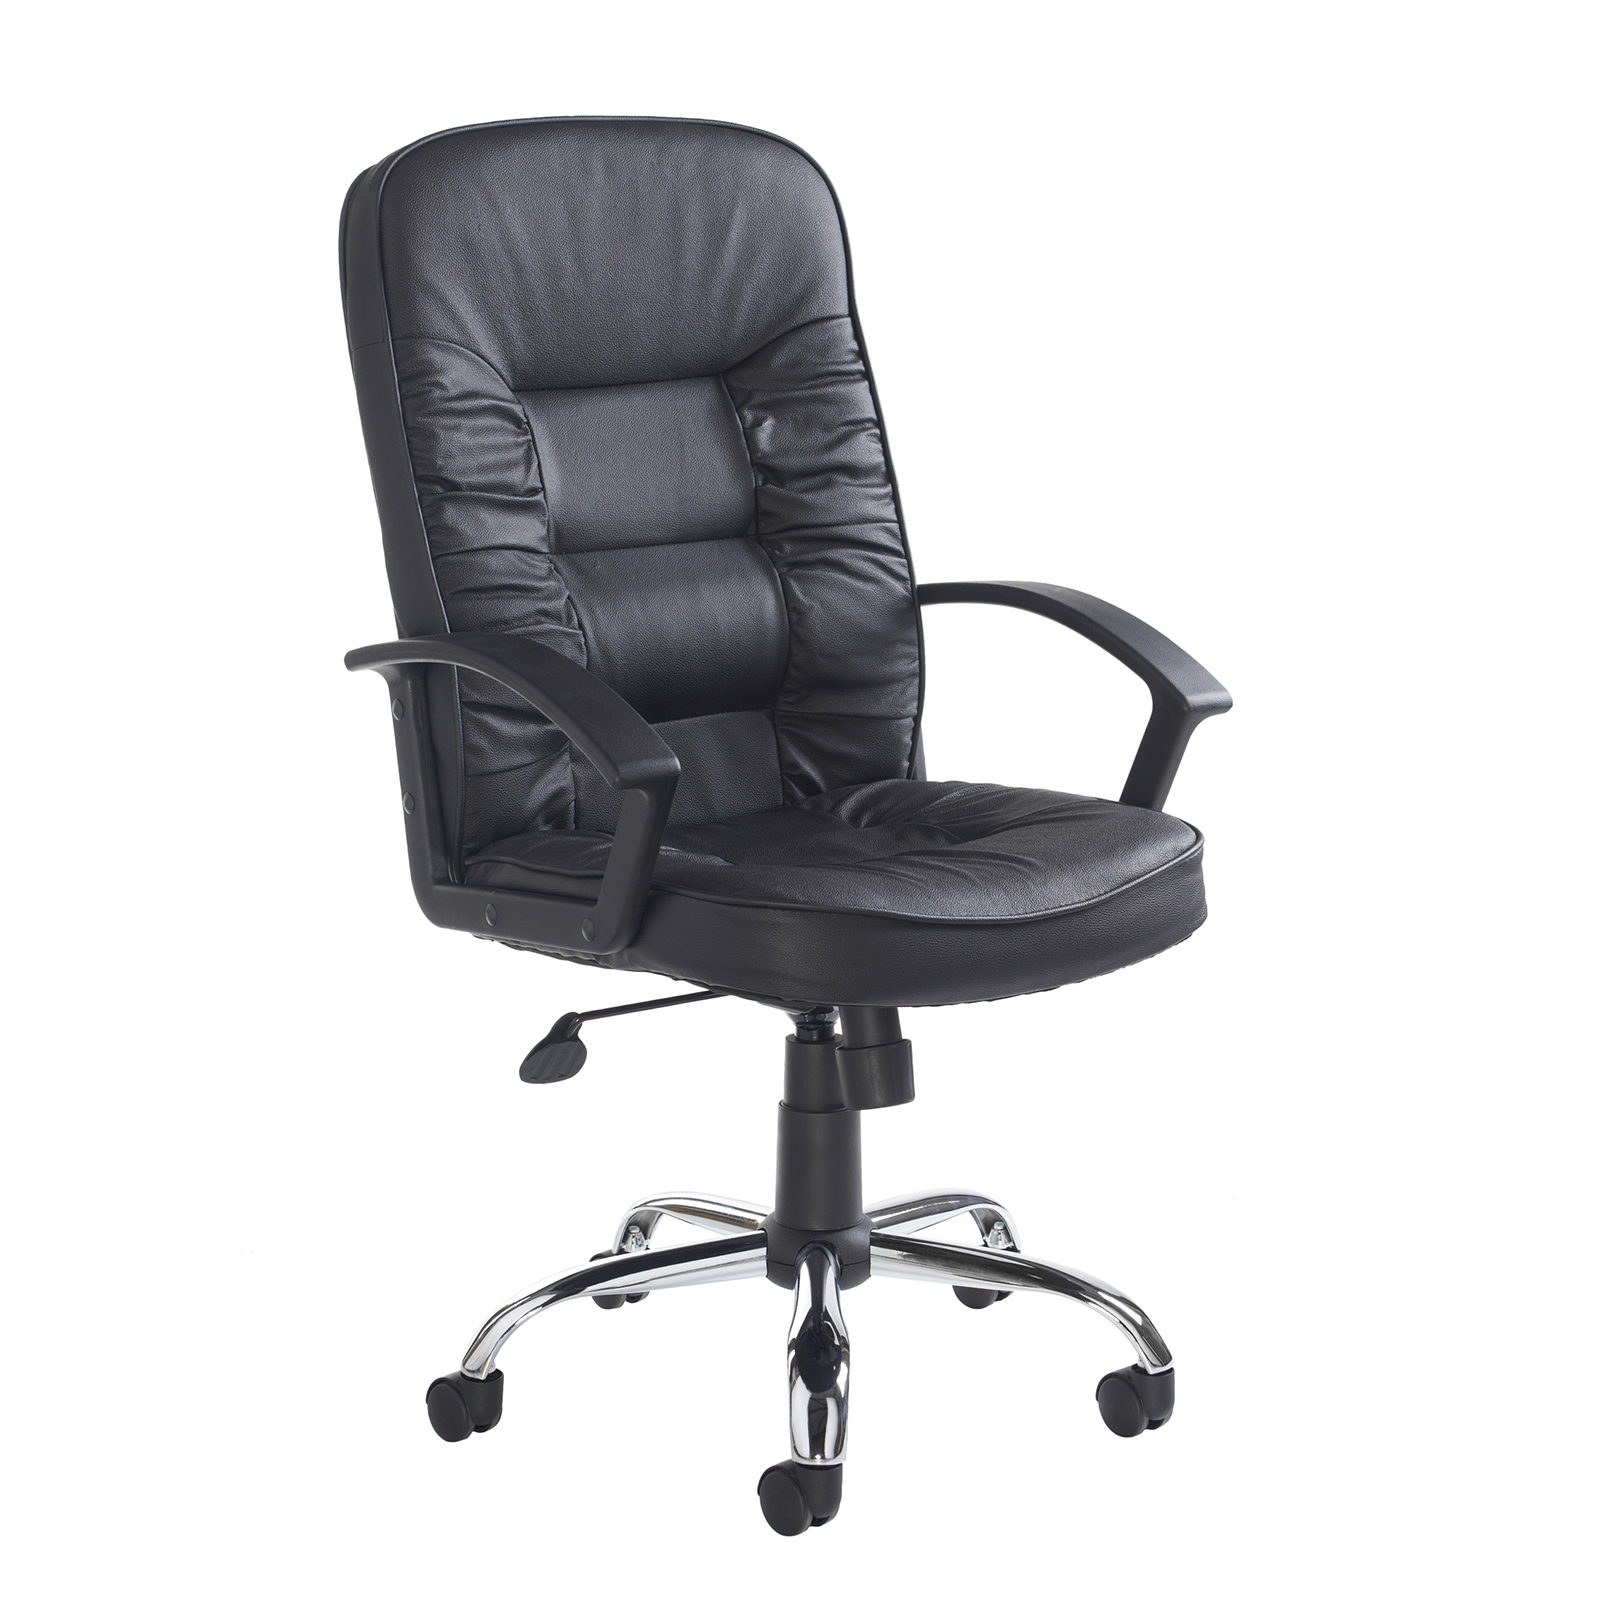 Executive Chairs Hertford high back managers chair - black leather faced